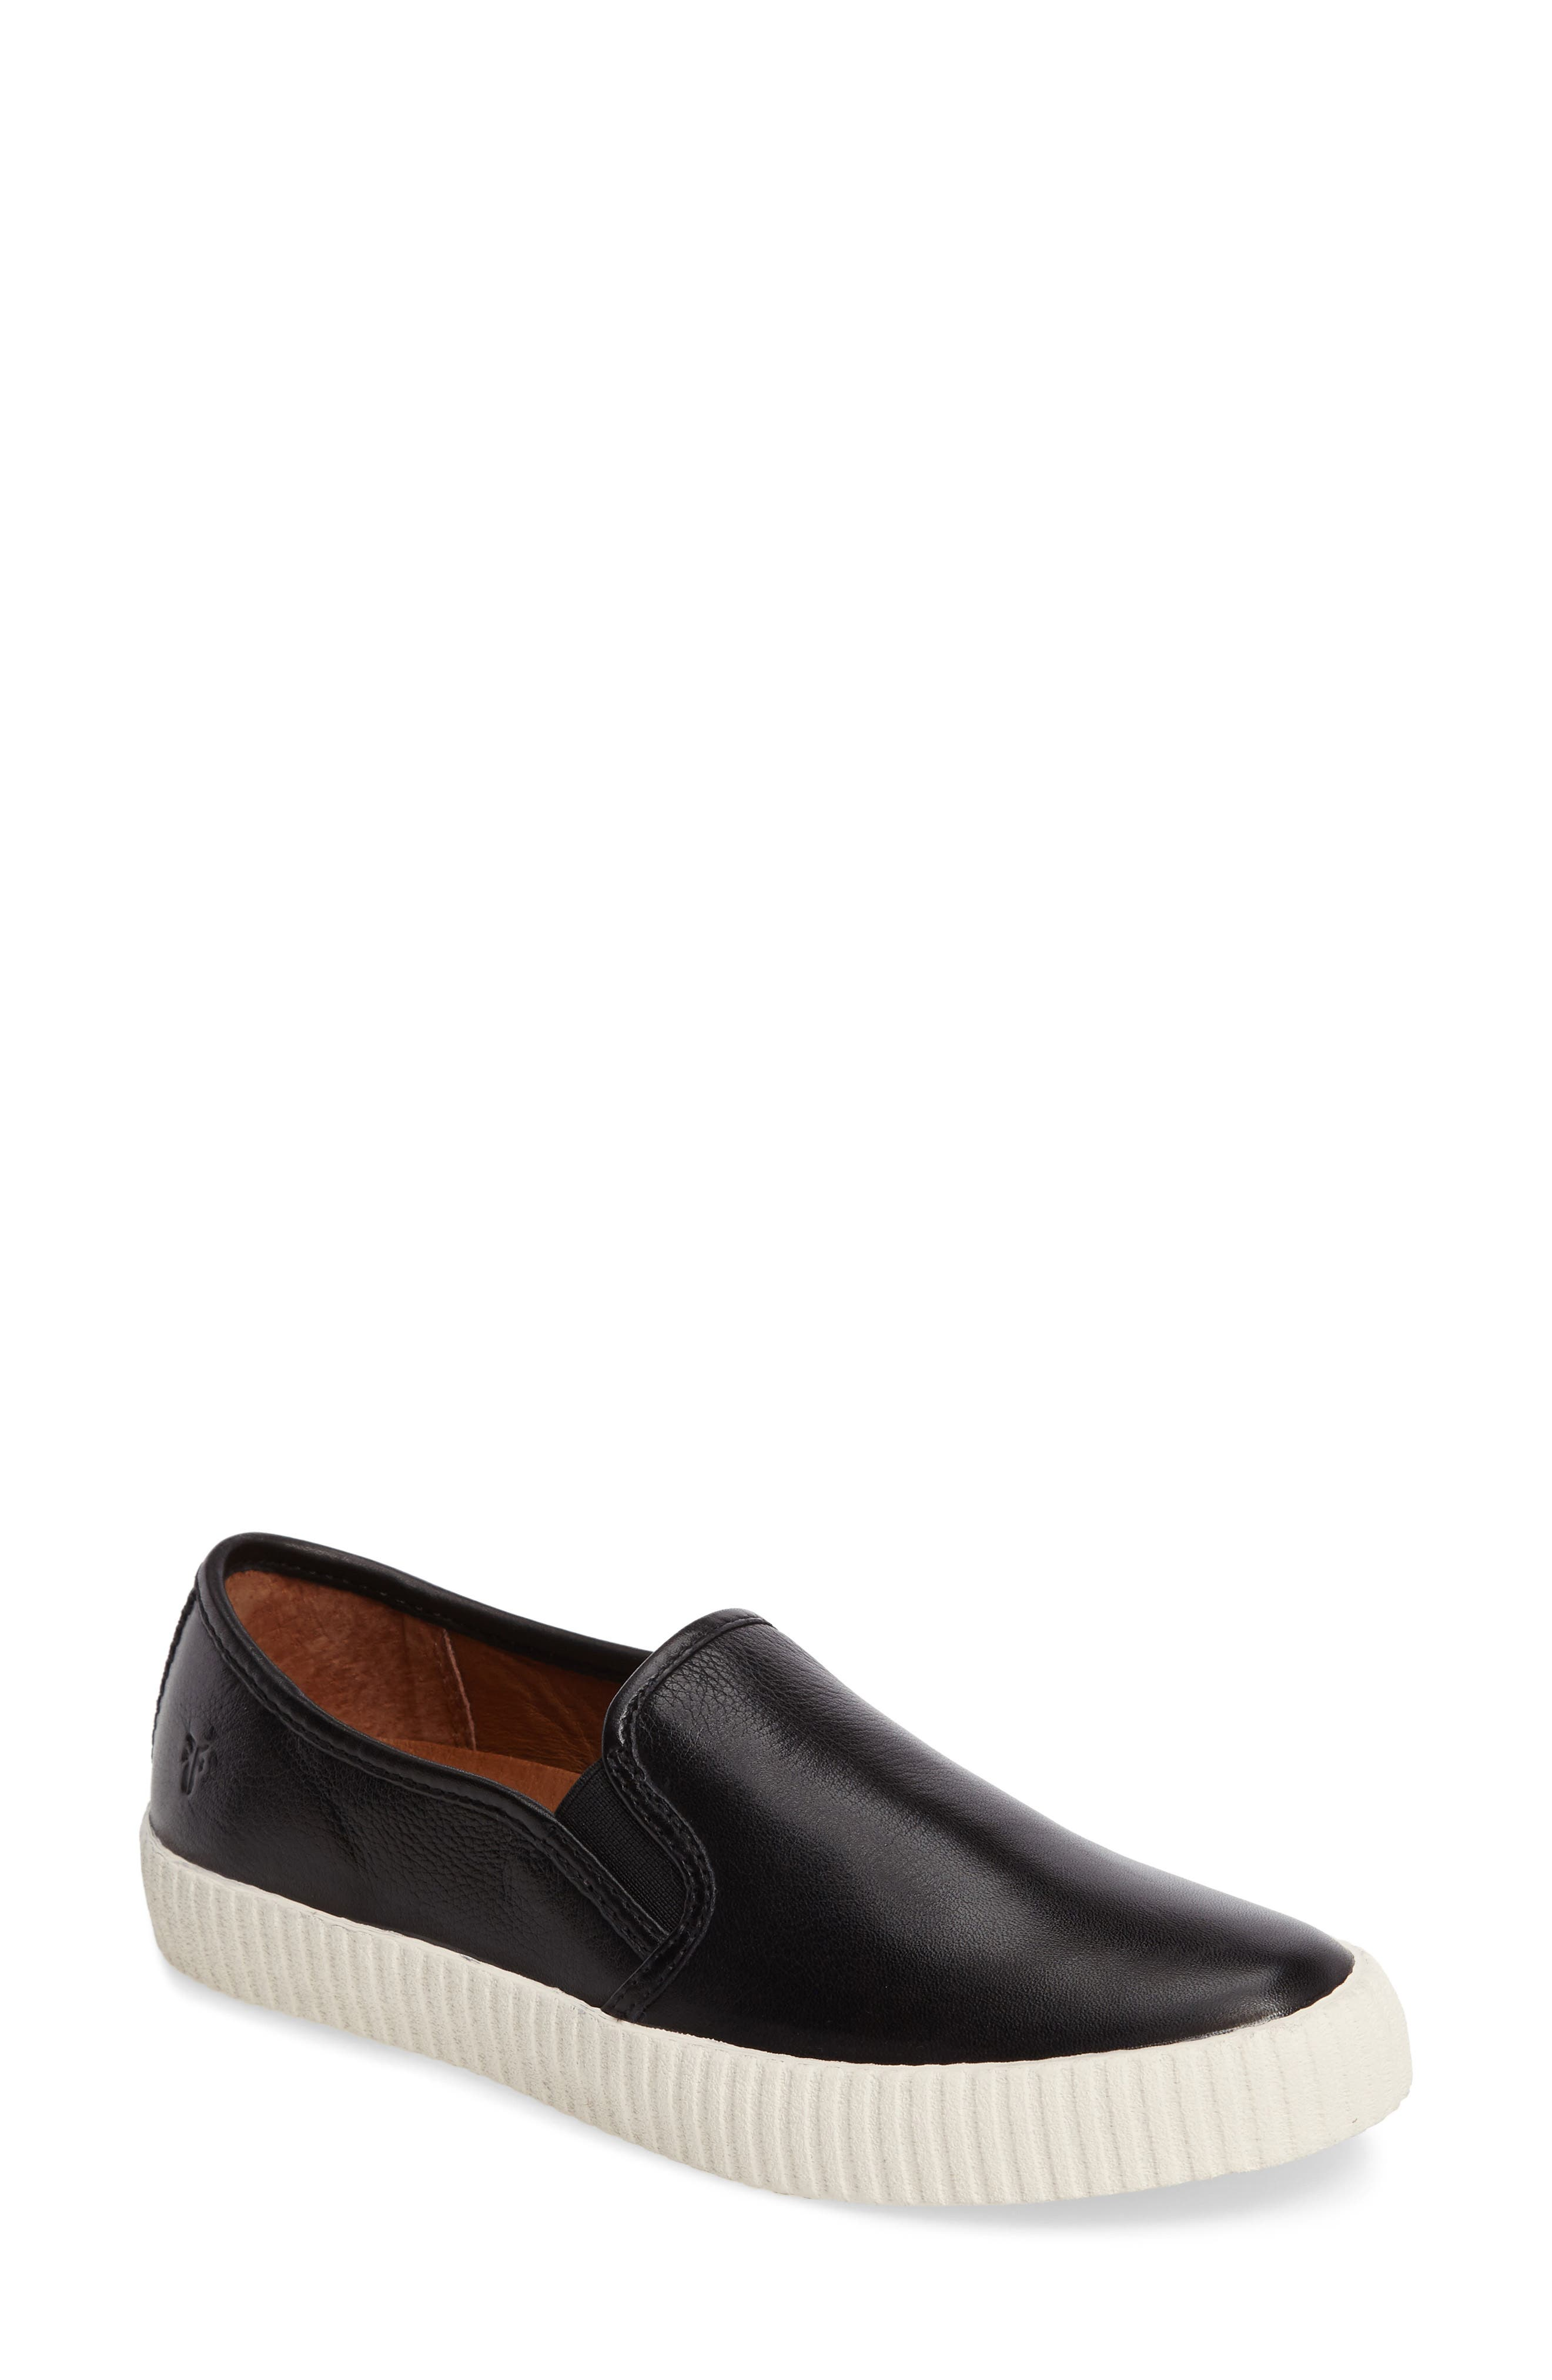 Camille Slip-On Sneaker,                         Main,                         color, 001